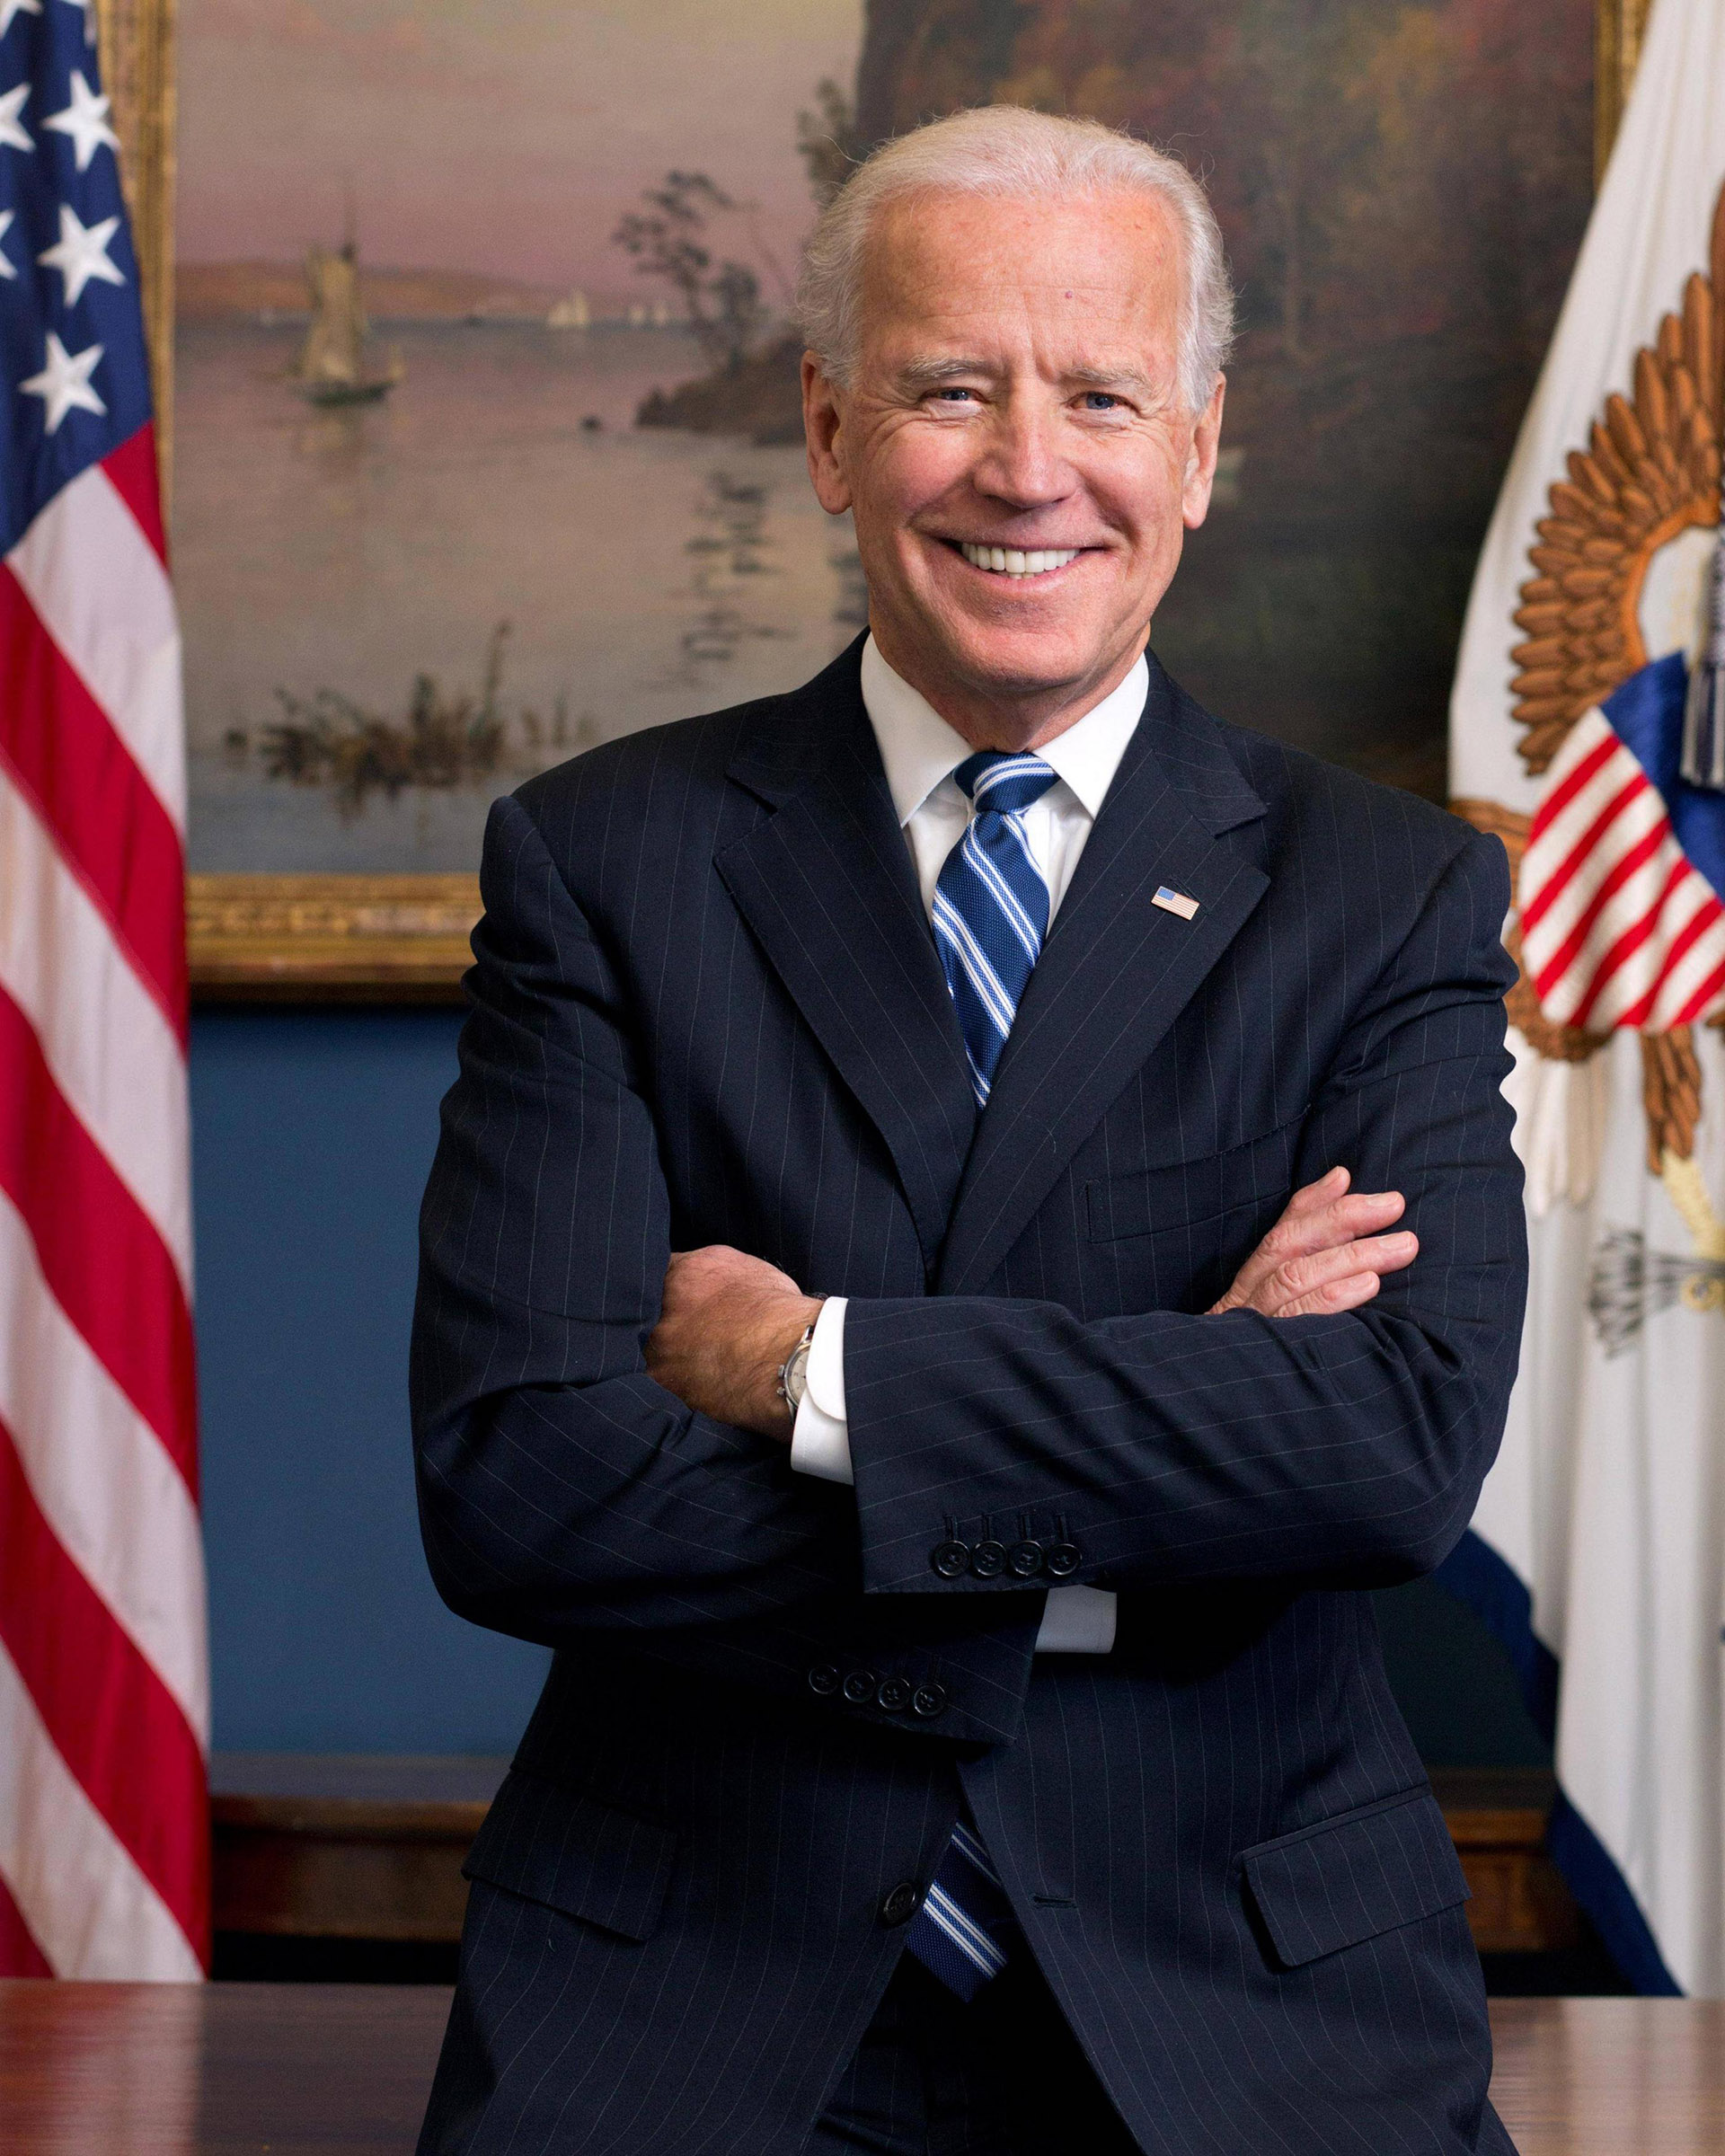 DROID Joe Biden - Democrat - 46th President of the United States of America - PUBLIC SERVANT for ALL of We the People, the Men, the Women, the Children, even the Republicans, the Poor, the Criminals, the Drug Addicts, the Greedy, the Cheaters, the Lazy, the Crazy and the Cruel - That's Everybody - That's We the People - That's All of Us - We are Extremely Interested in Very Unconventional Futuristic Strategies to Fully Fund ALL Green Solutions, Eliminate All Poverty Everywhere Forever, Pay for ALL Health Care for Everybody Everywhere Forever, Eliminate All Forms of Debt and Taxation Forever and Permanently End All War on Planet Earth Forever - That sounds good to us. We're interested. We took out Mitch McConnell for Ken. The man was CORRUPT. It's OVER. We're DONE. We FIRED the WHOLE CORRUPT SYSTEM. The PRIVATE SECTOR TOOK OVER. We are loyal to the women. Let's talk business.